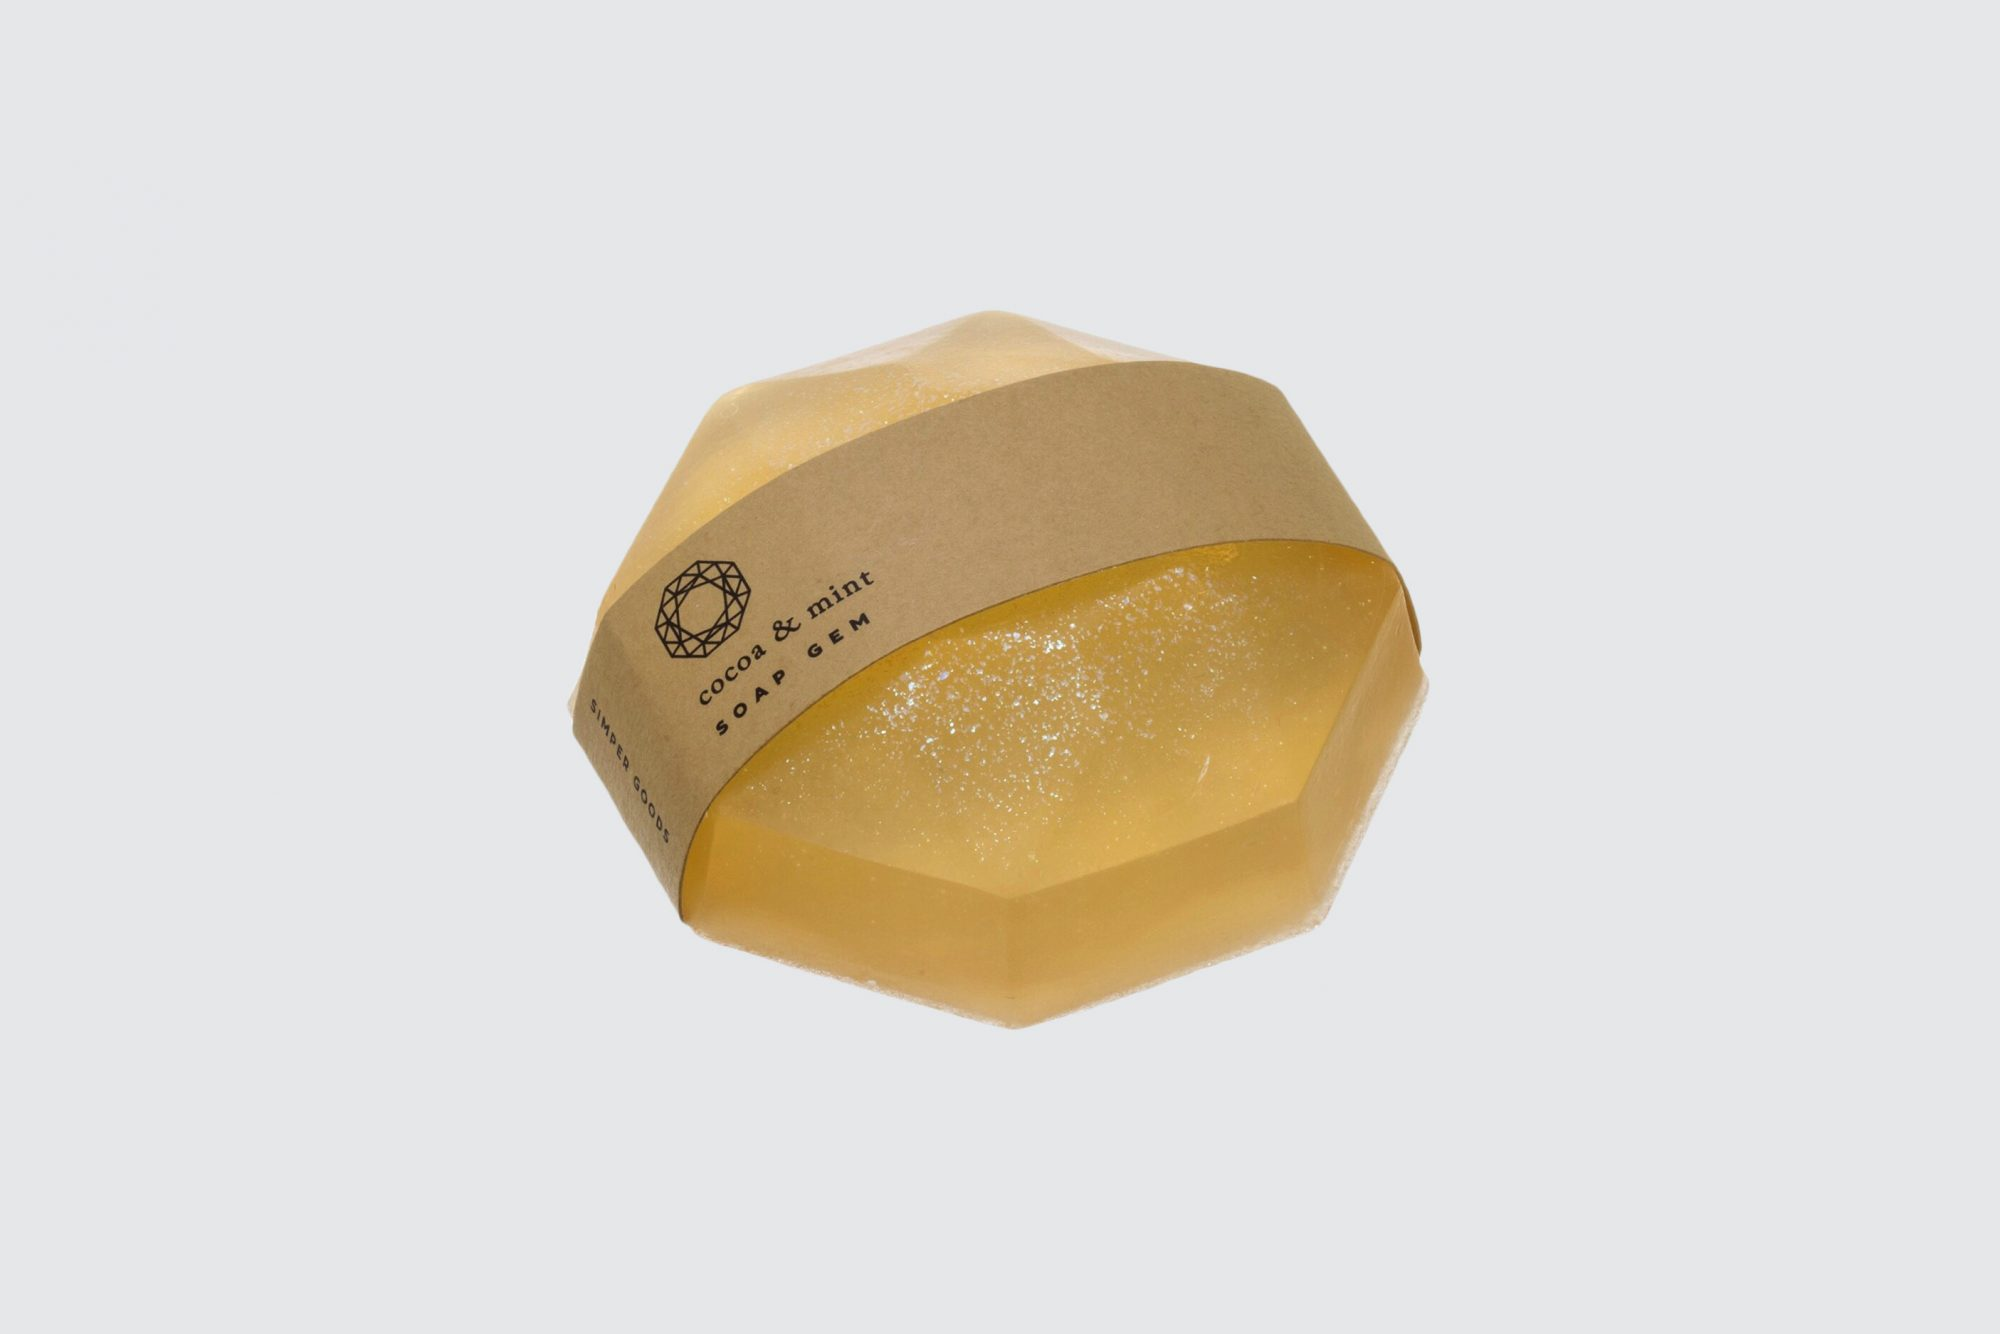 Simper Goods Cocoa and Mint Soap Gem